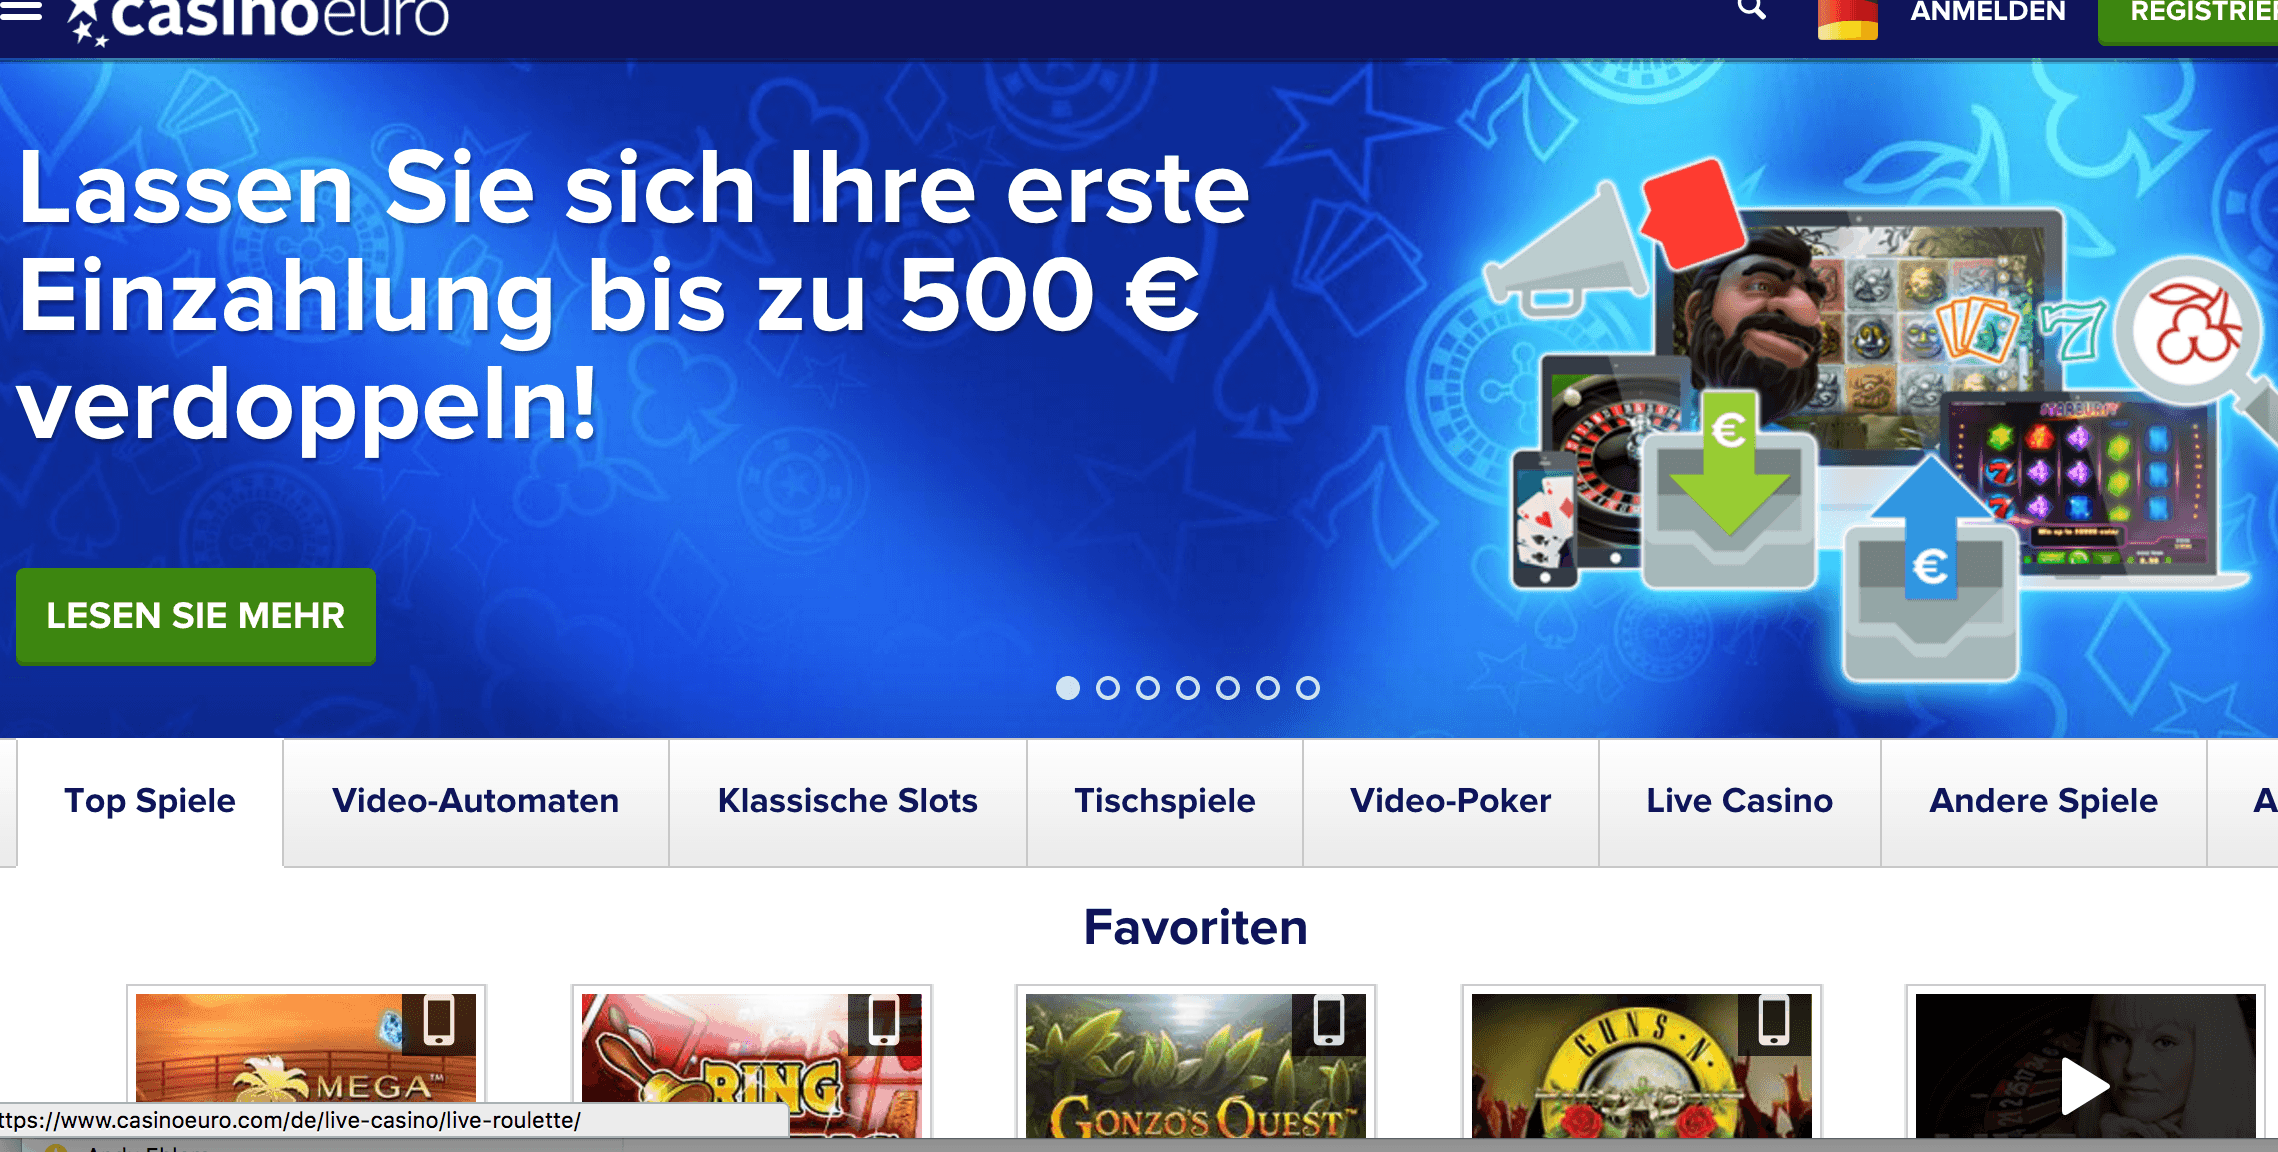 Casinoeuro im Casinotest